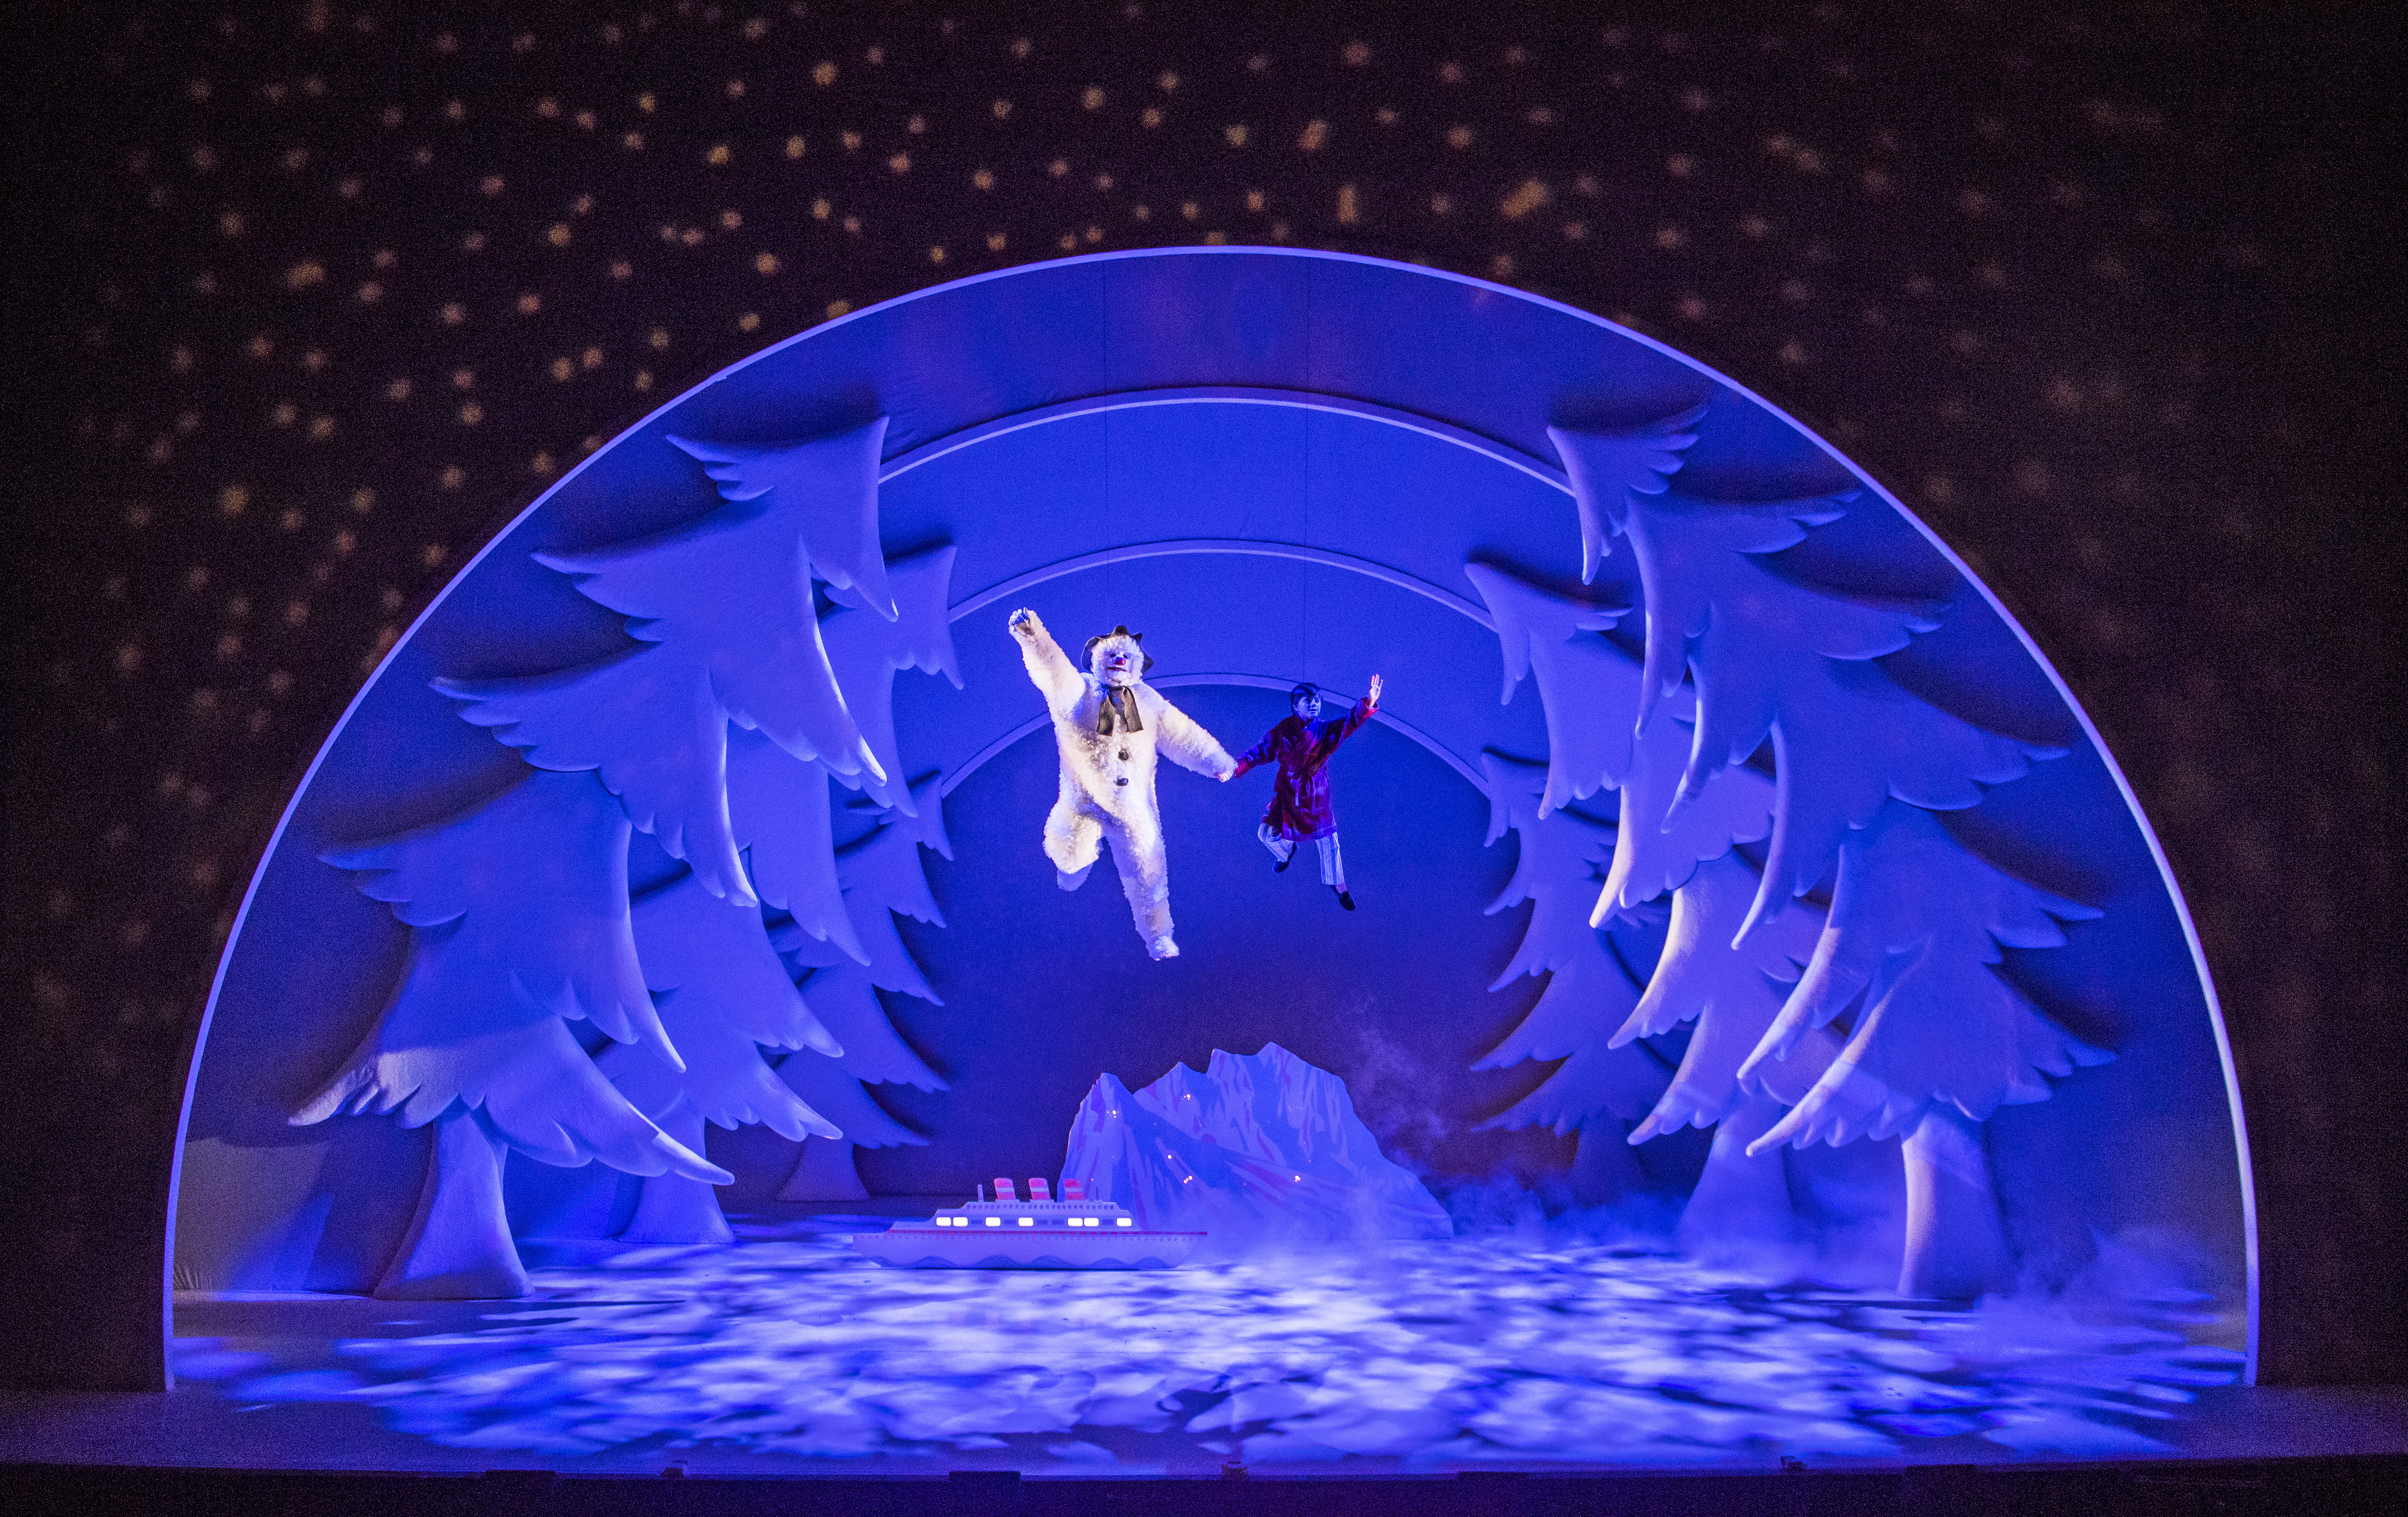 Dancer James Leece takes the title role in The Snowman stage show, flying through the air in a winter wonderland